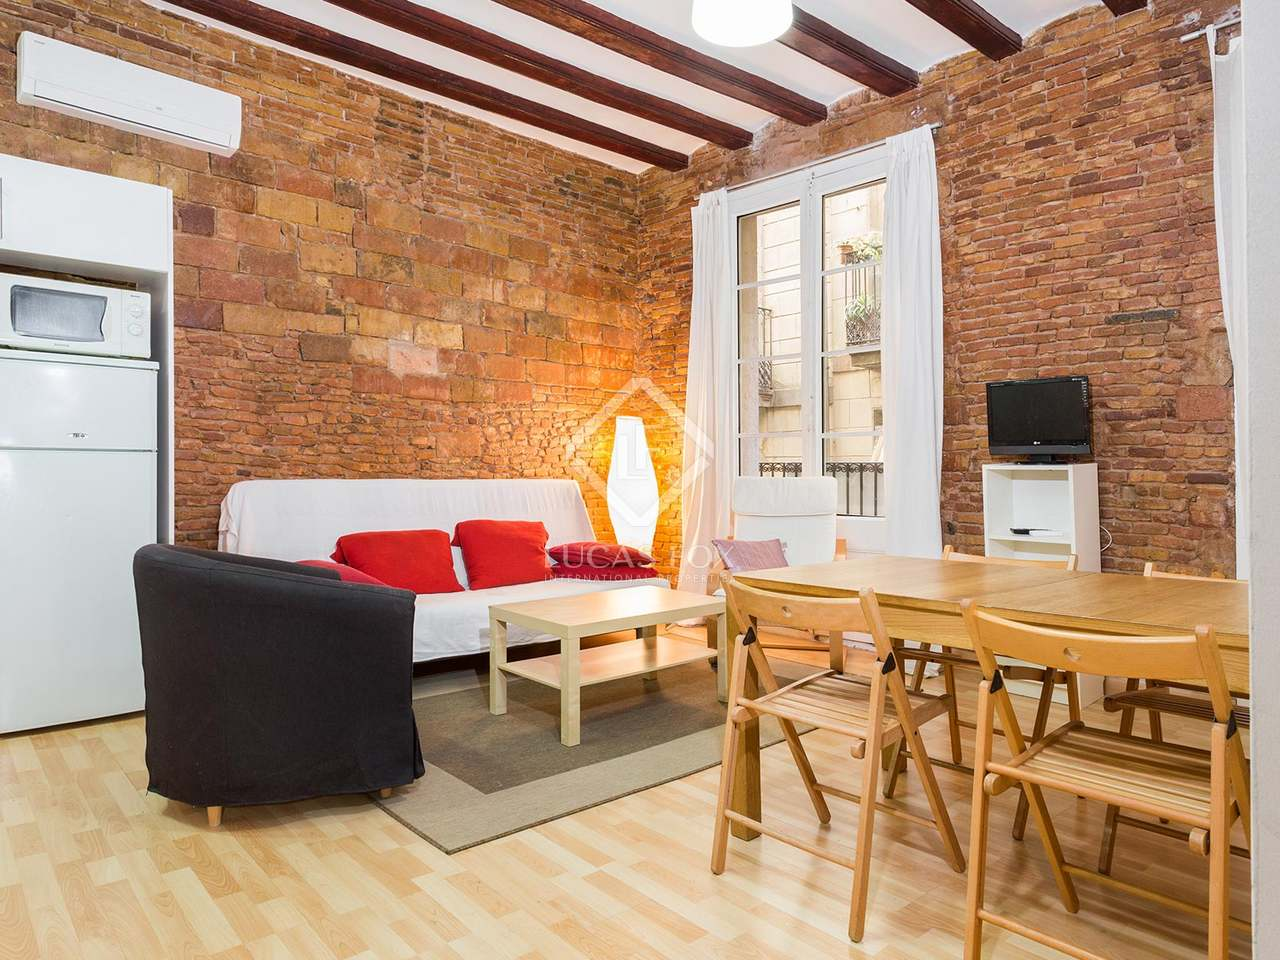 Appartement de design en vente dans le quartier gothique - Appartement design retro rustique barcelone ...